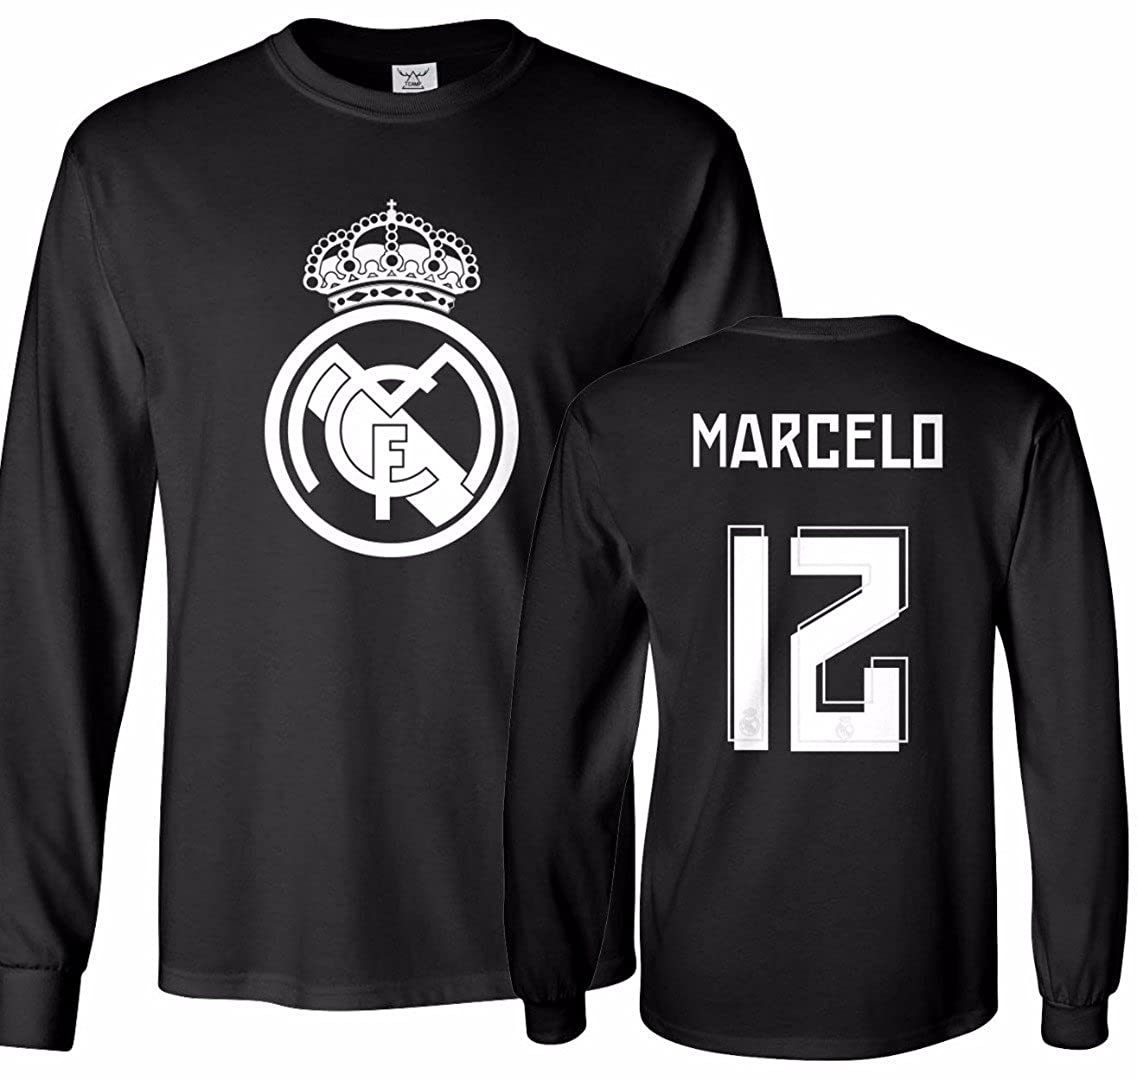 on sale 00409 75eaf Tcamp Real Madrid Shirt Marcelo Vieira #12 Jersey Men's Long Sleeve T-Shirt